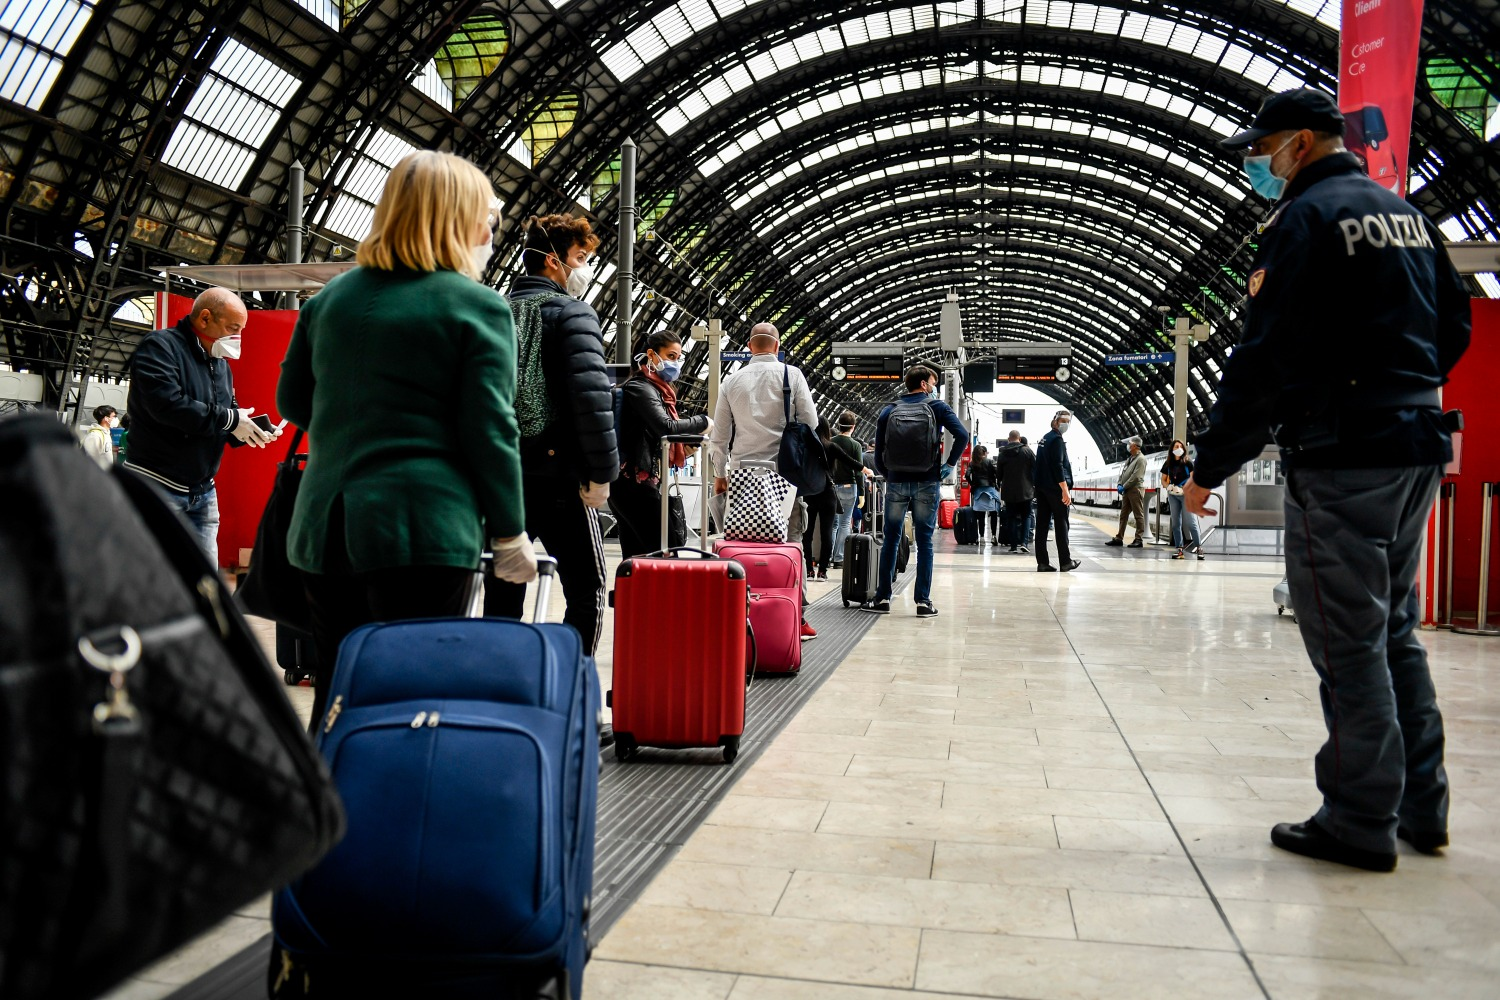 People line up to board the train in Milan, Italy.